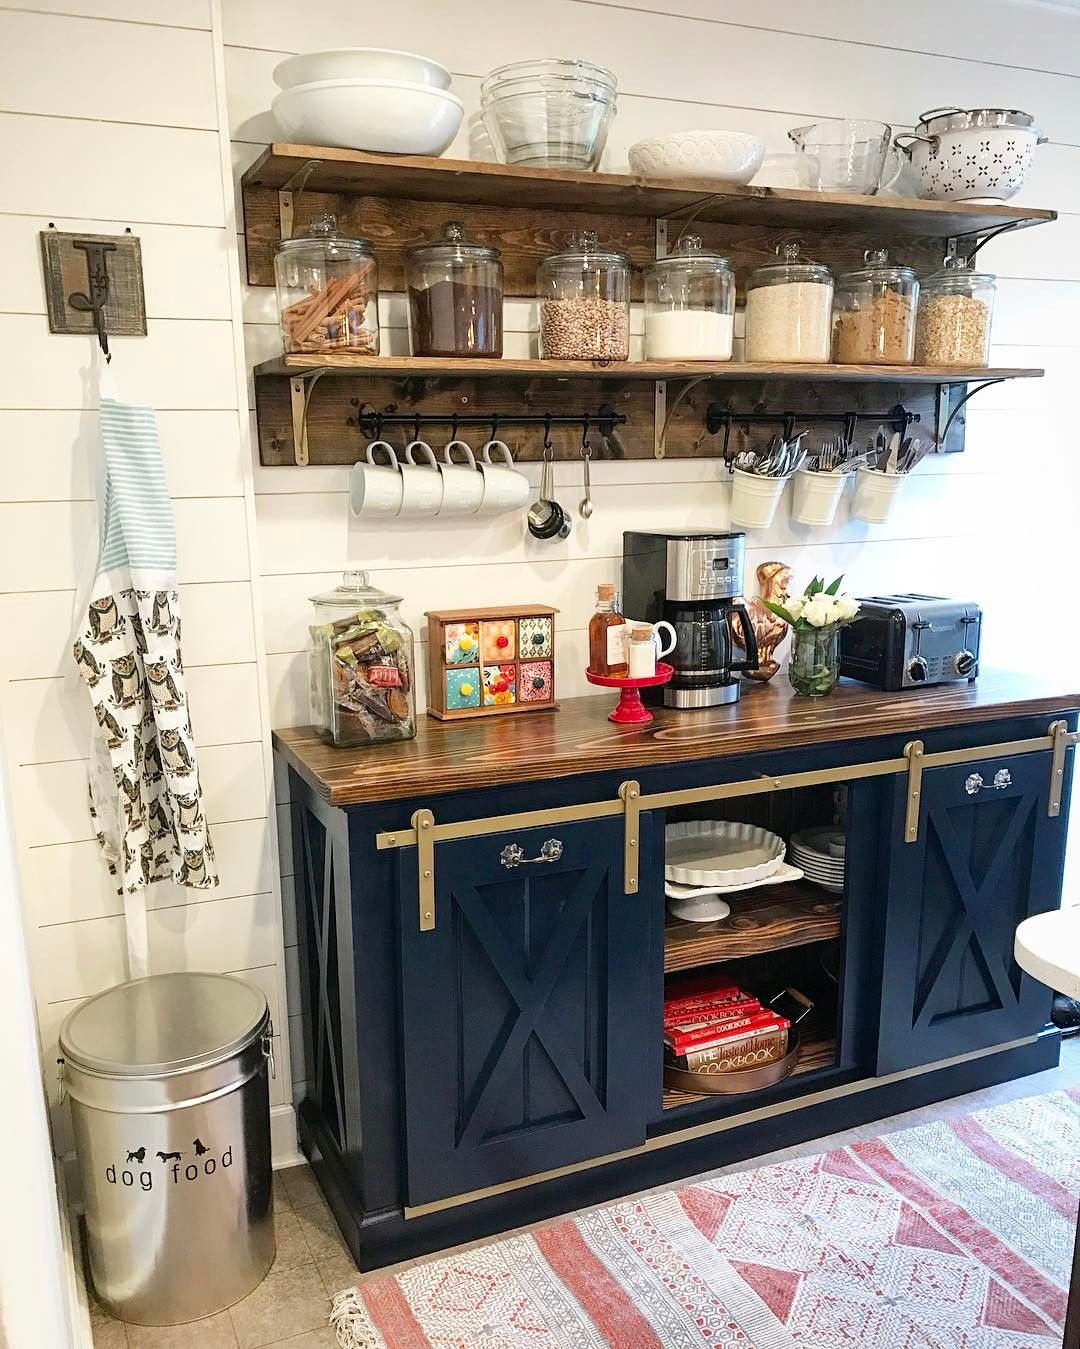 Design For Kitchen Shelves: 25+ DIY Coffee Bar Ideas For Your Home (Stunning Pictures